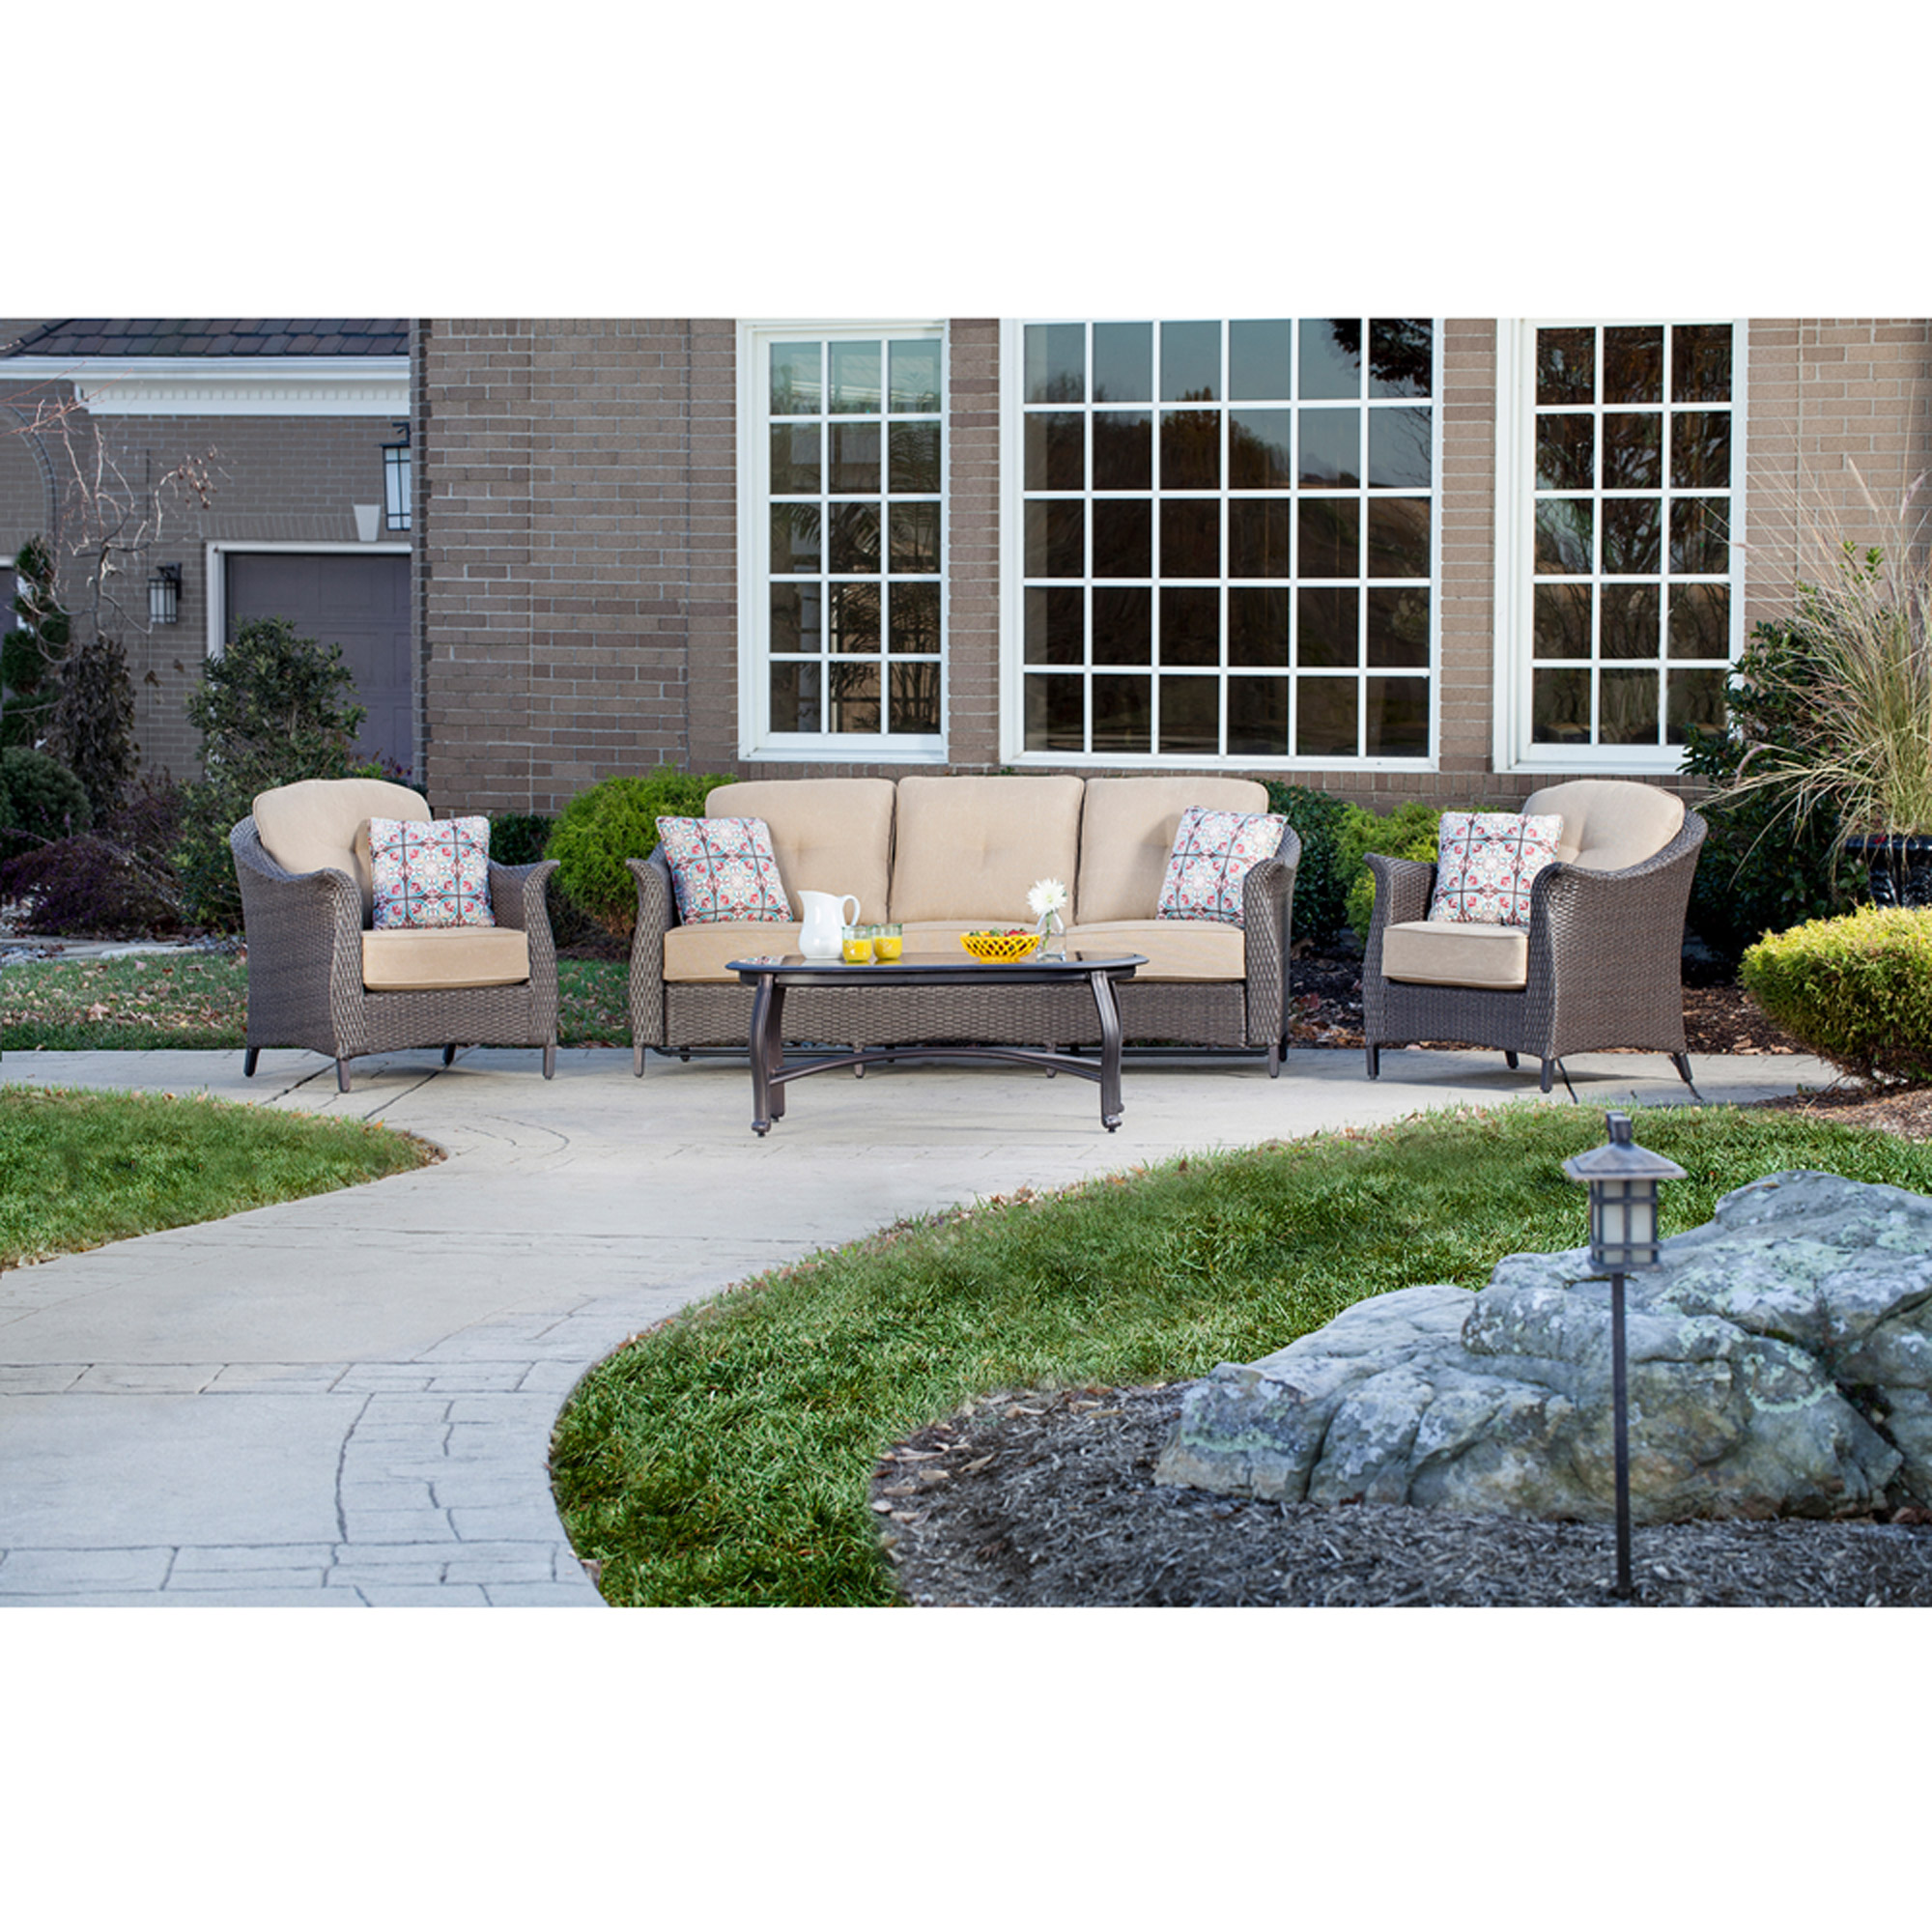 Hanover Gramercy 4-Piece Outdoor Wicker Conversation Set